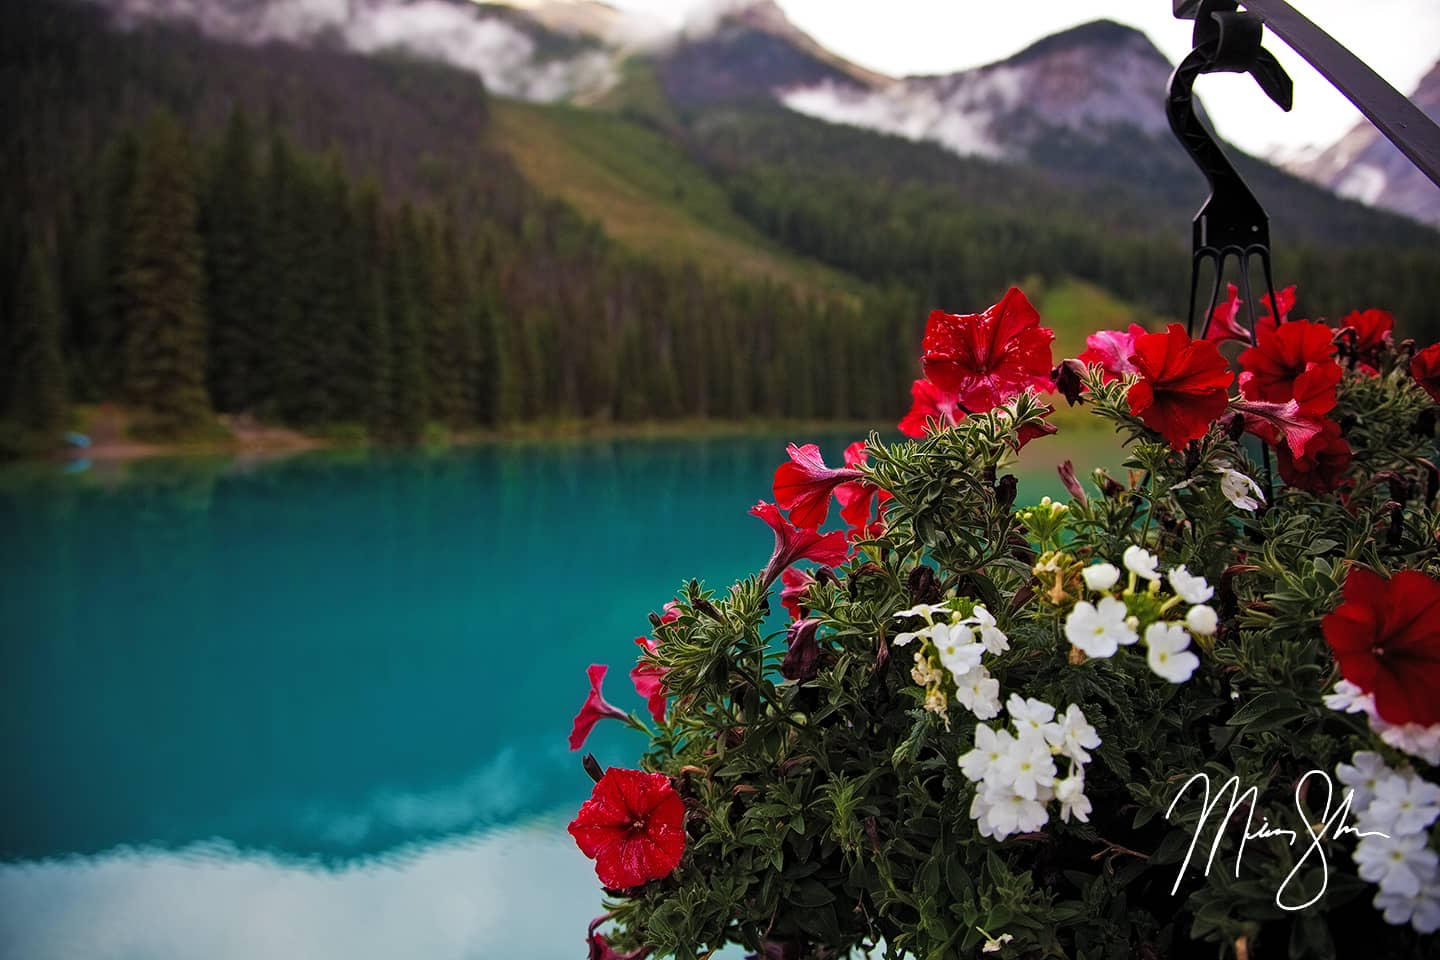 Emerald Beauty - Emerald Lake, Yoho National Park, British Columbia, Canada